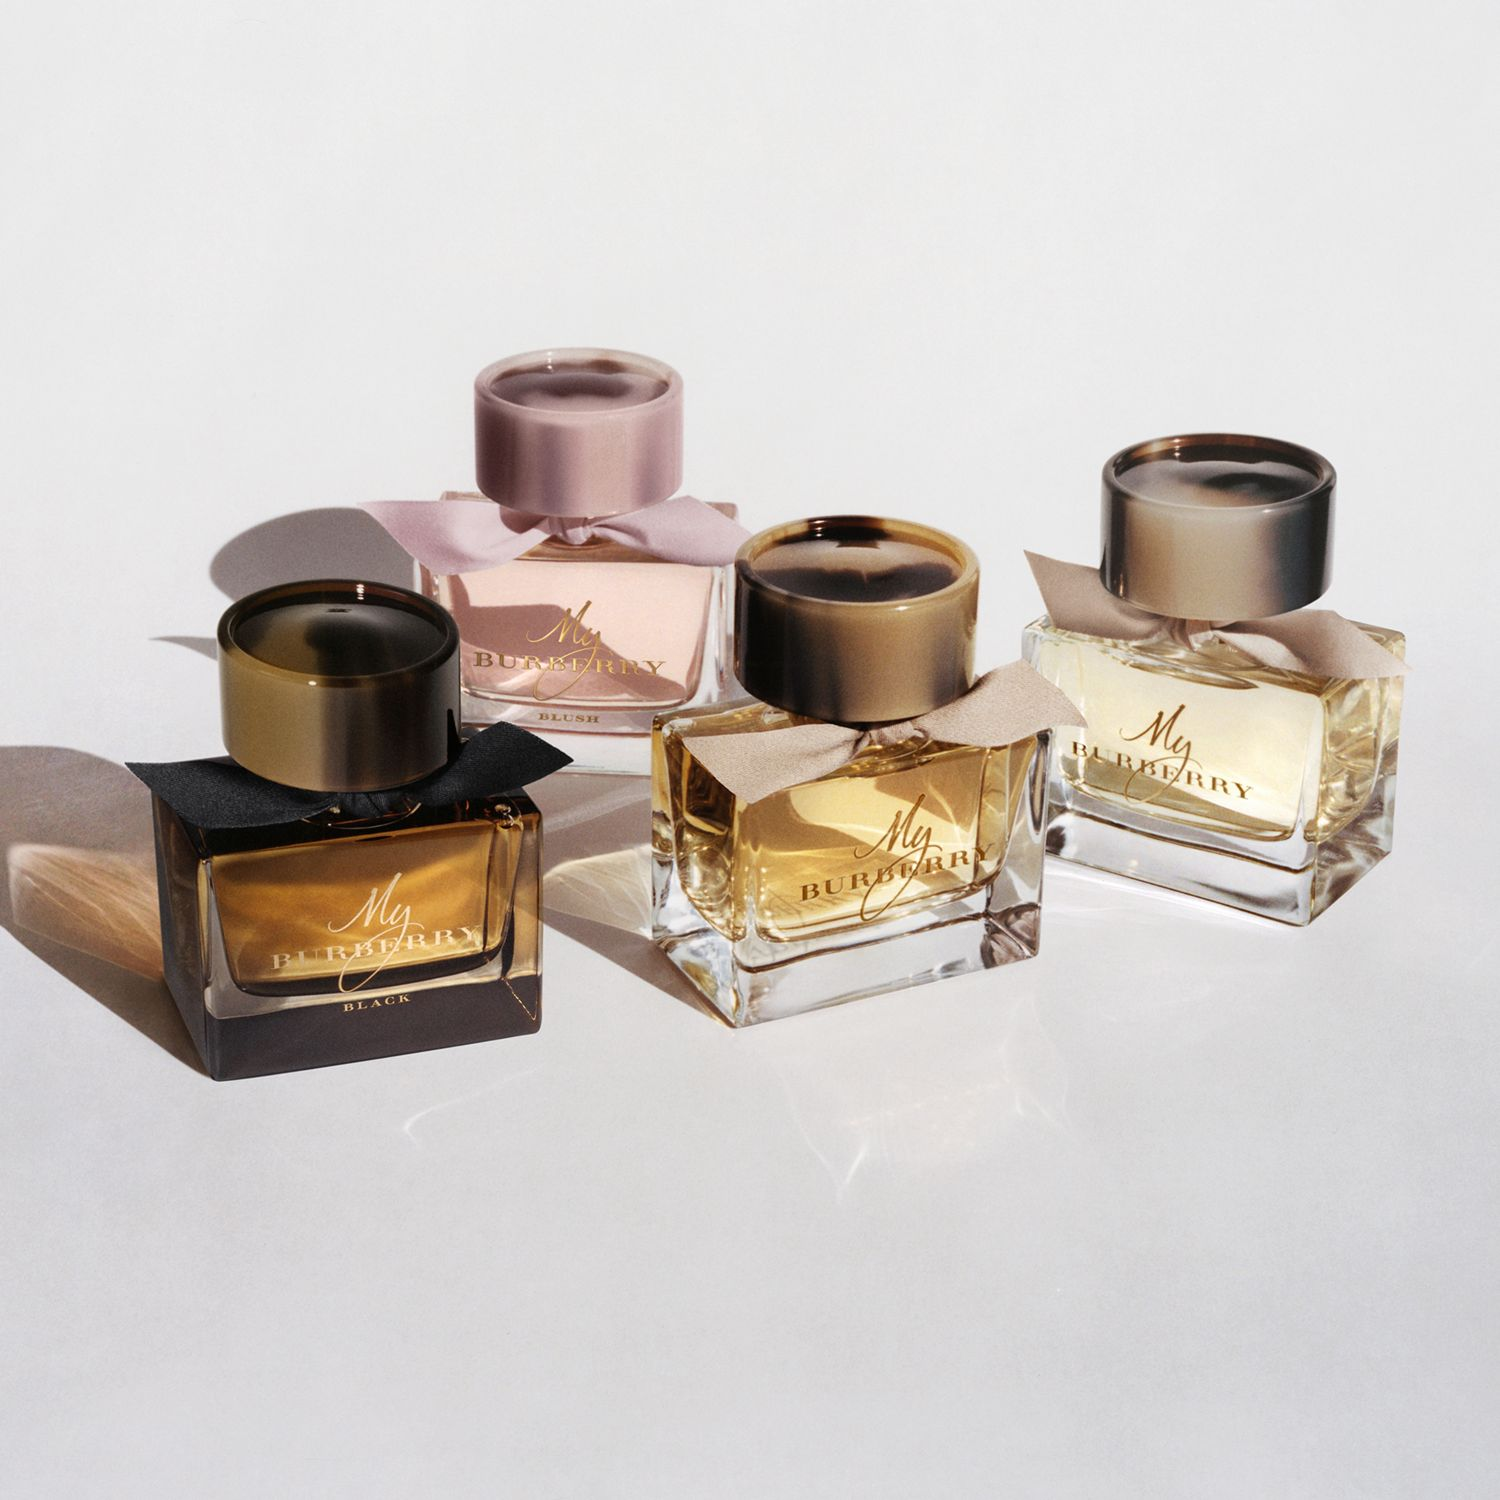 La collection de parfums